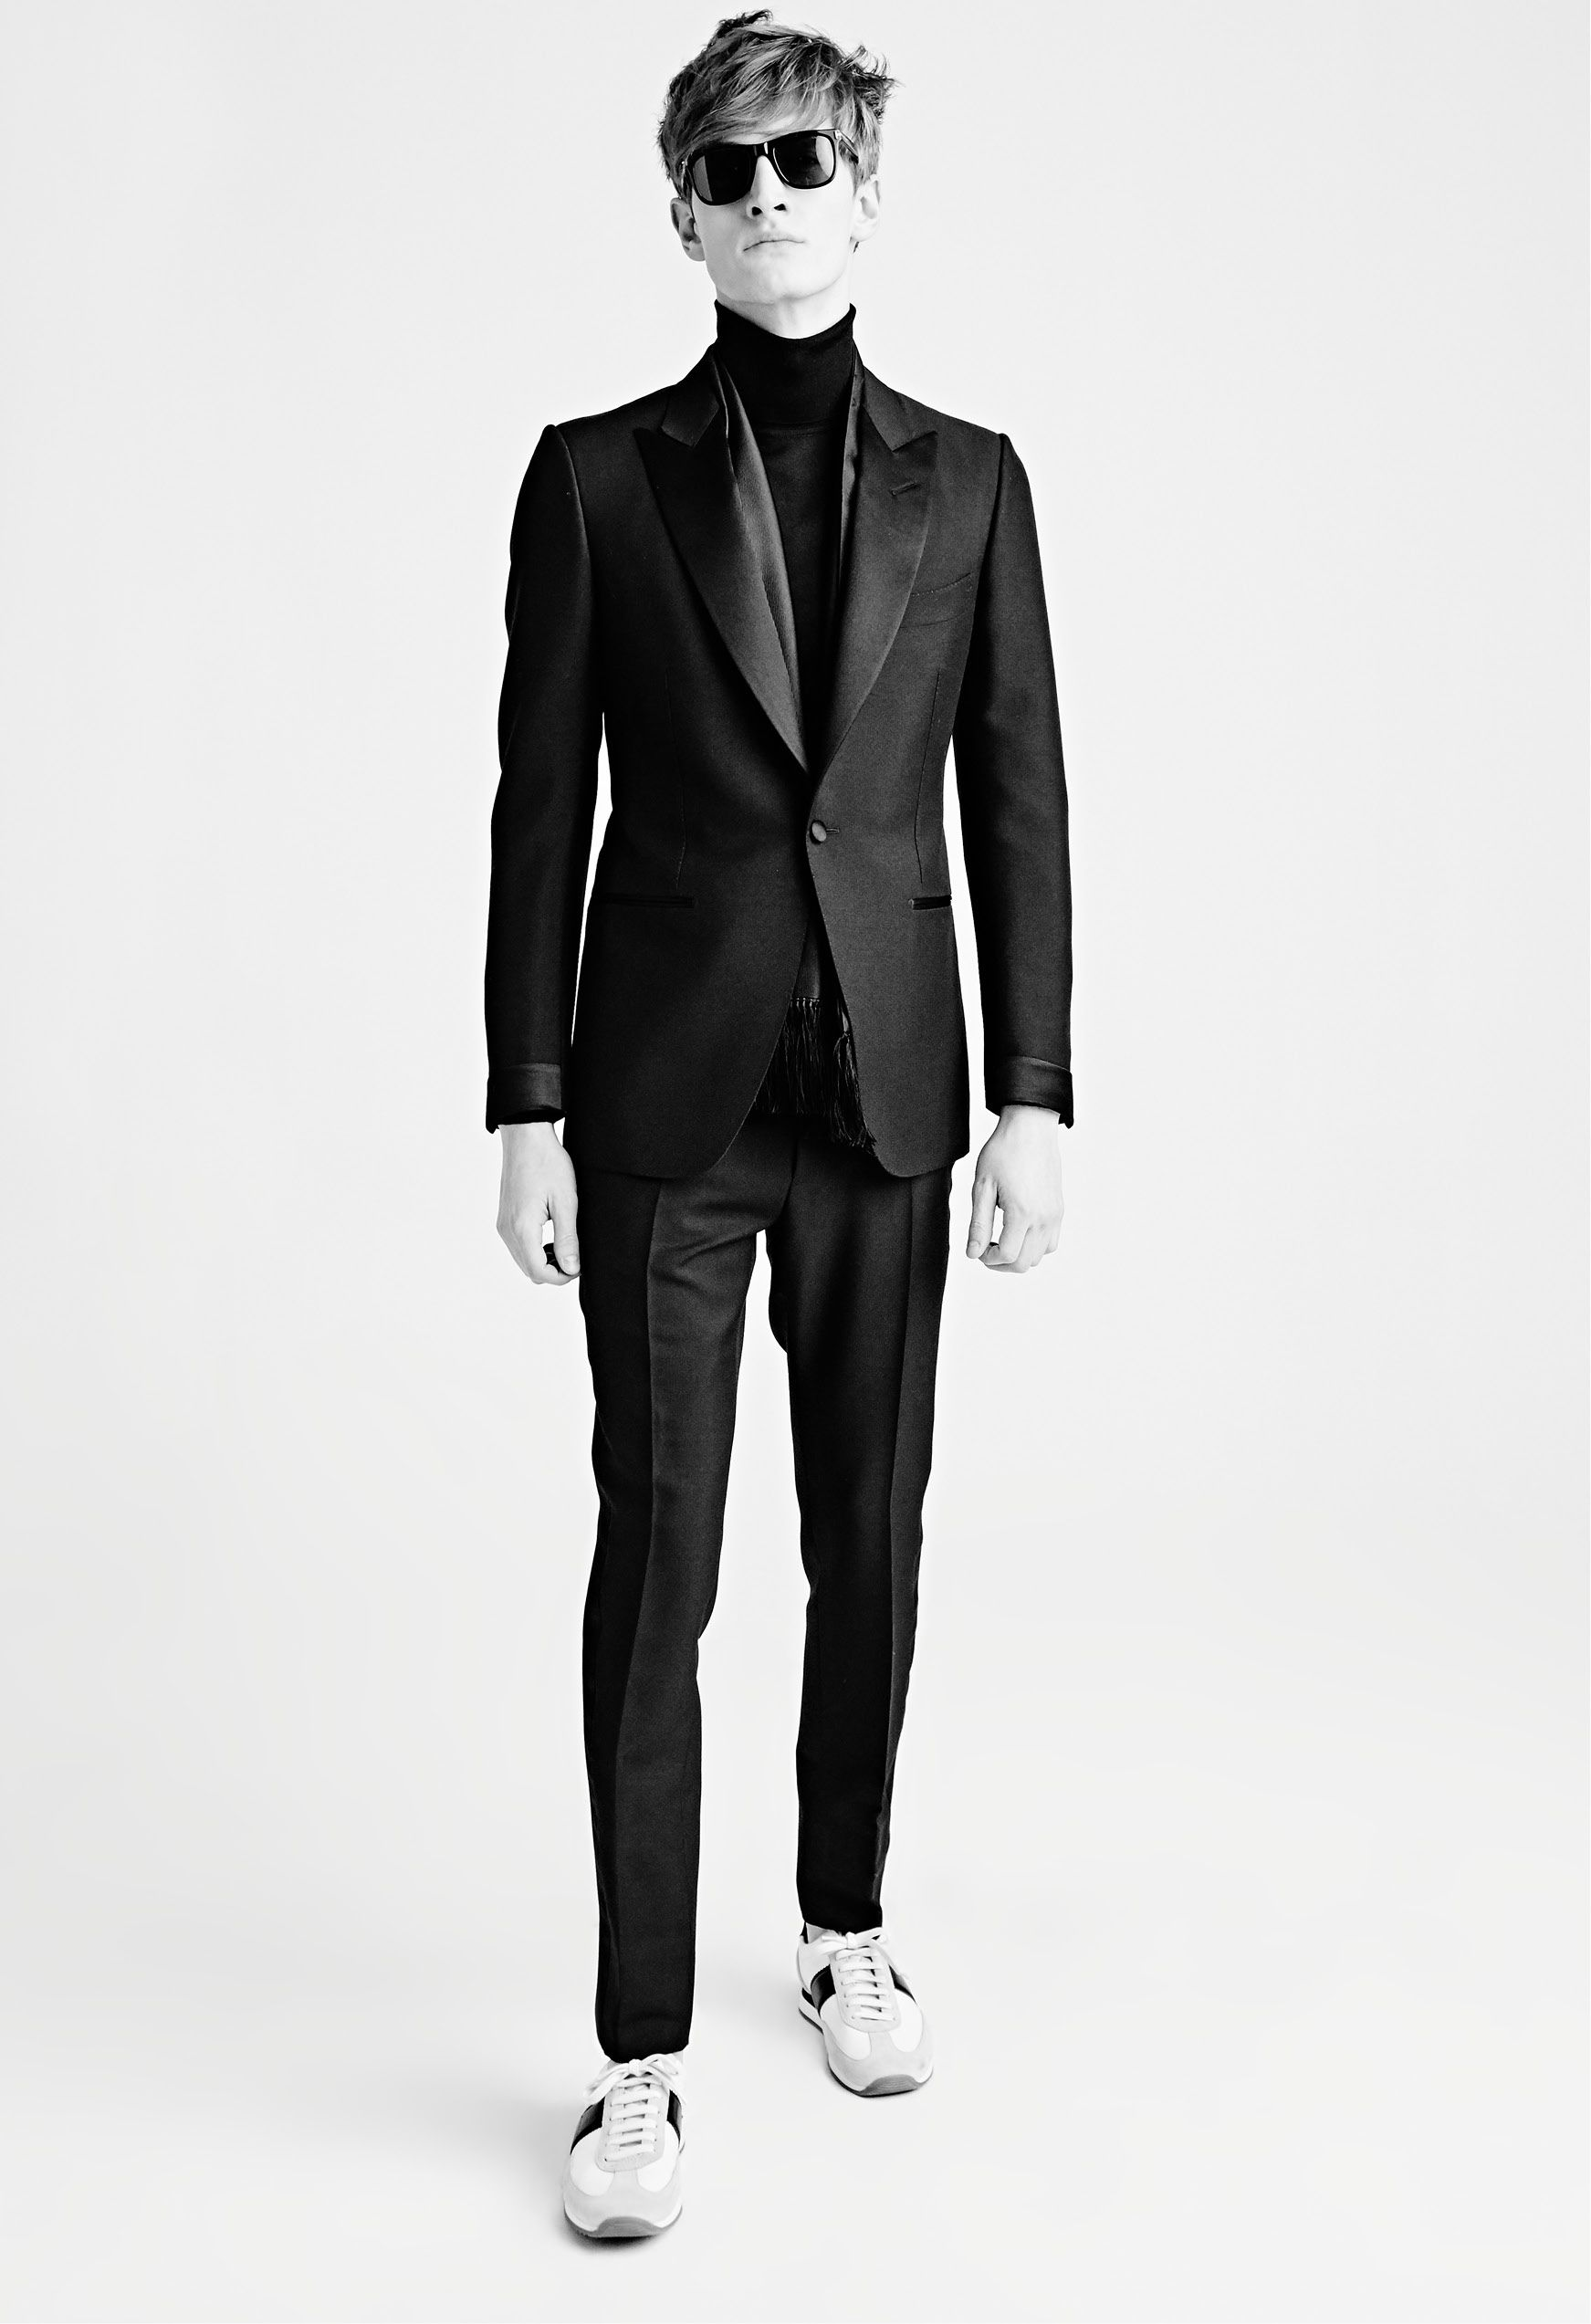 MEN'S AW15 LOOK 26 | Black overdyed mélange mohair satin peak lapel buckley cocktail jacket. Black classic cashmere turtle neck. Black overdyed mélange mohair satin trim buckley evening pants with belt loops. Black leo sunglasses. Black silk evening scarf with fringe. White suede textile and leather orford runner with black details.